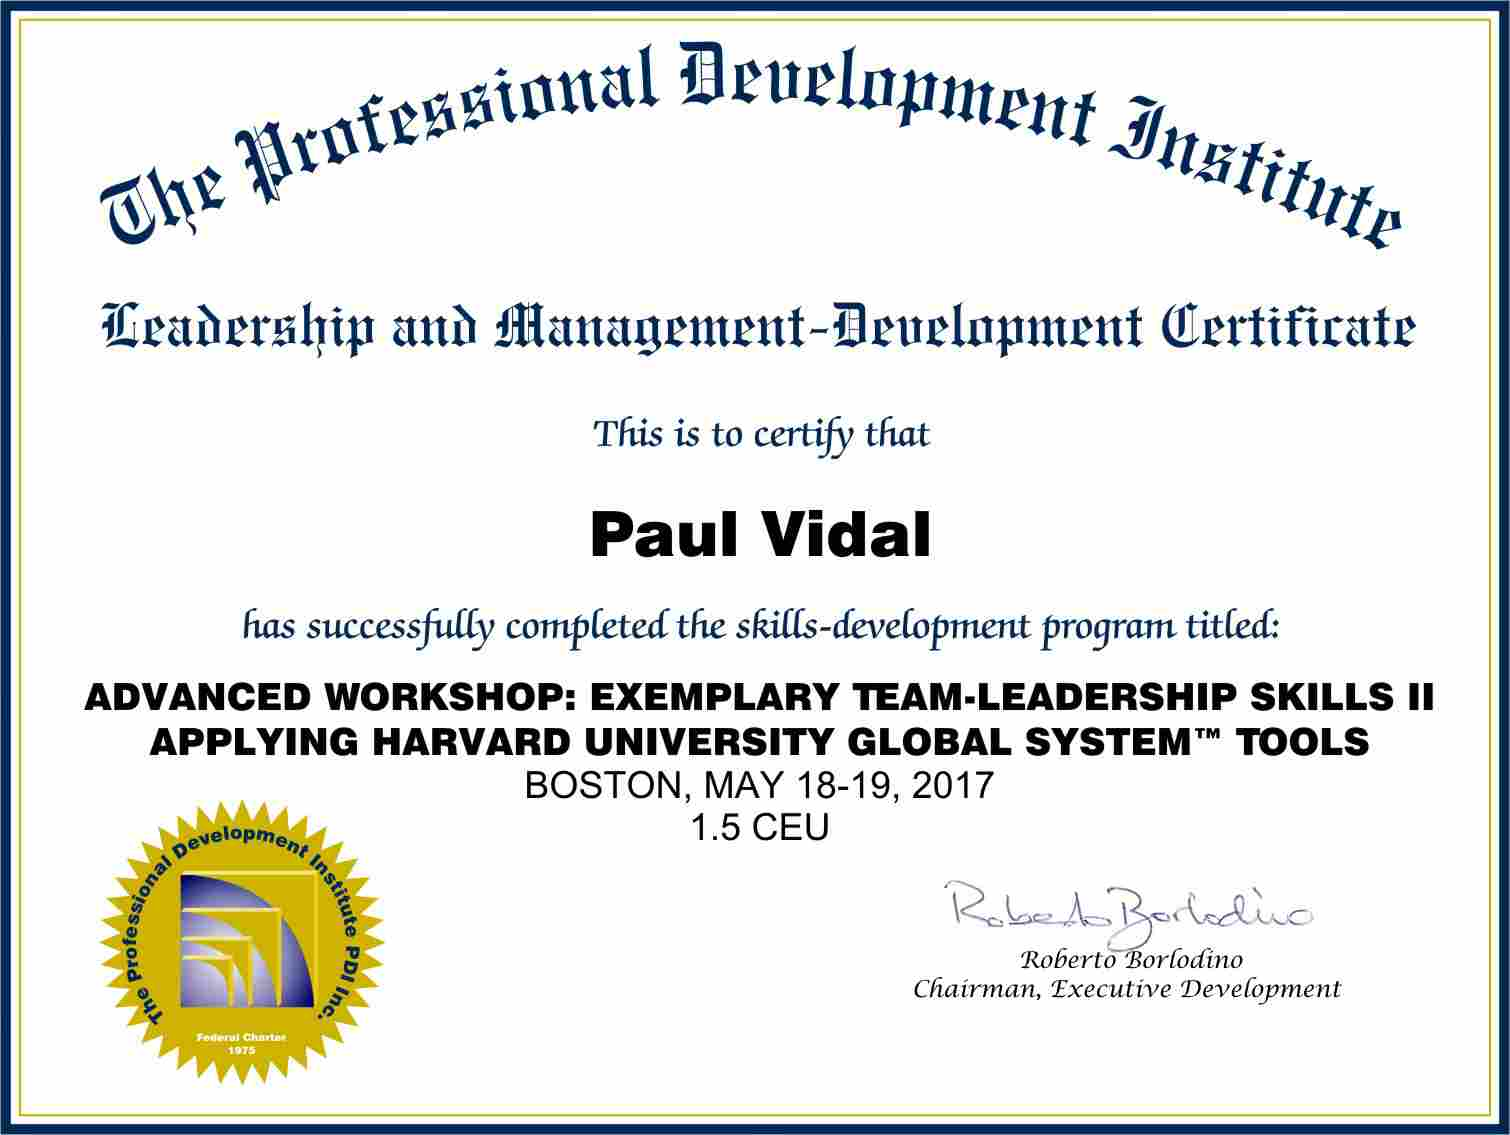 Advanced Workshop Certificate for Exemplary Team Leadeship II